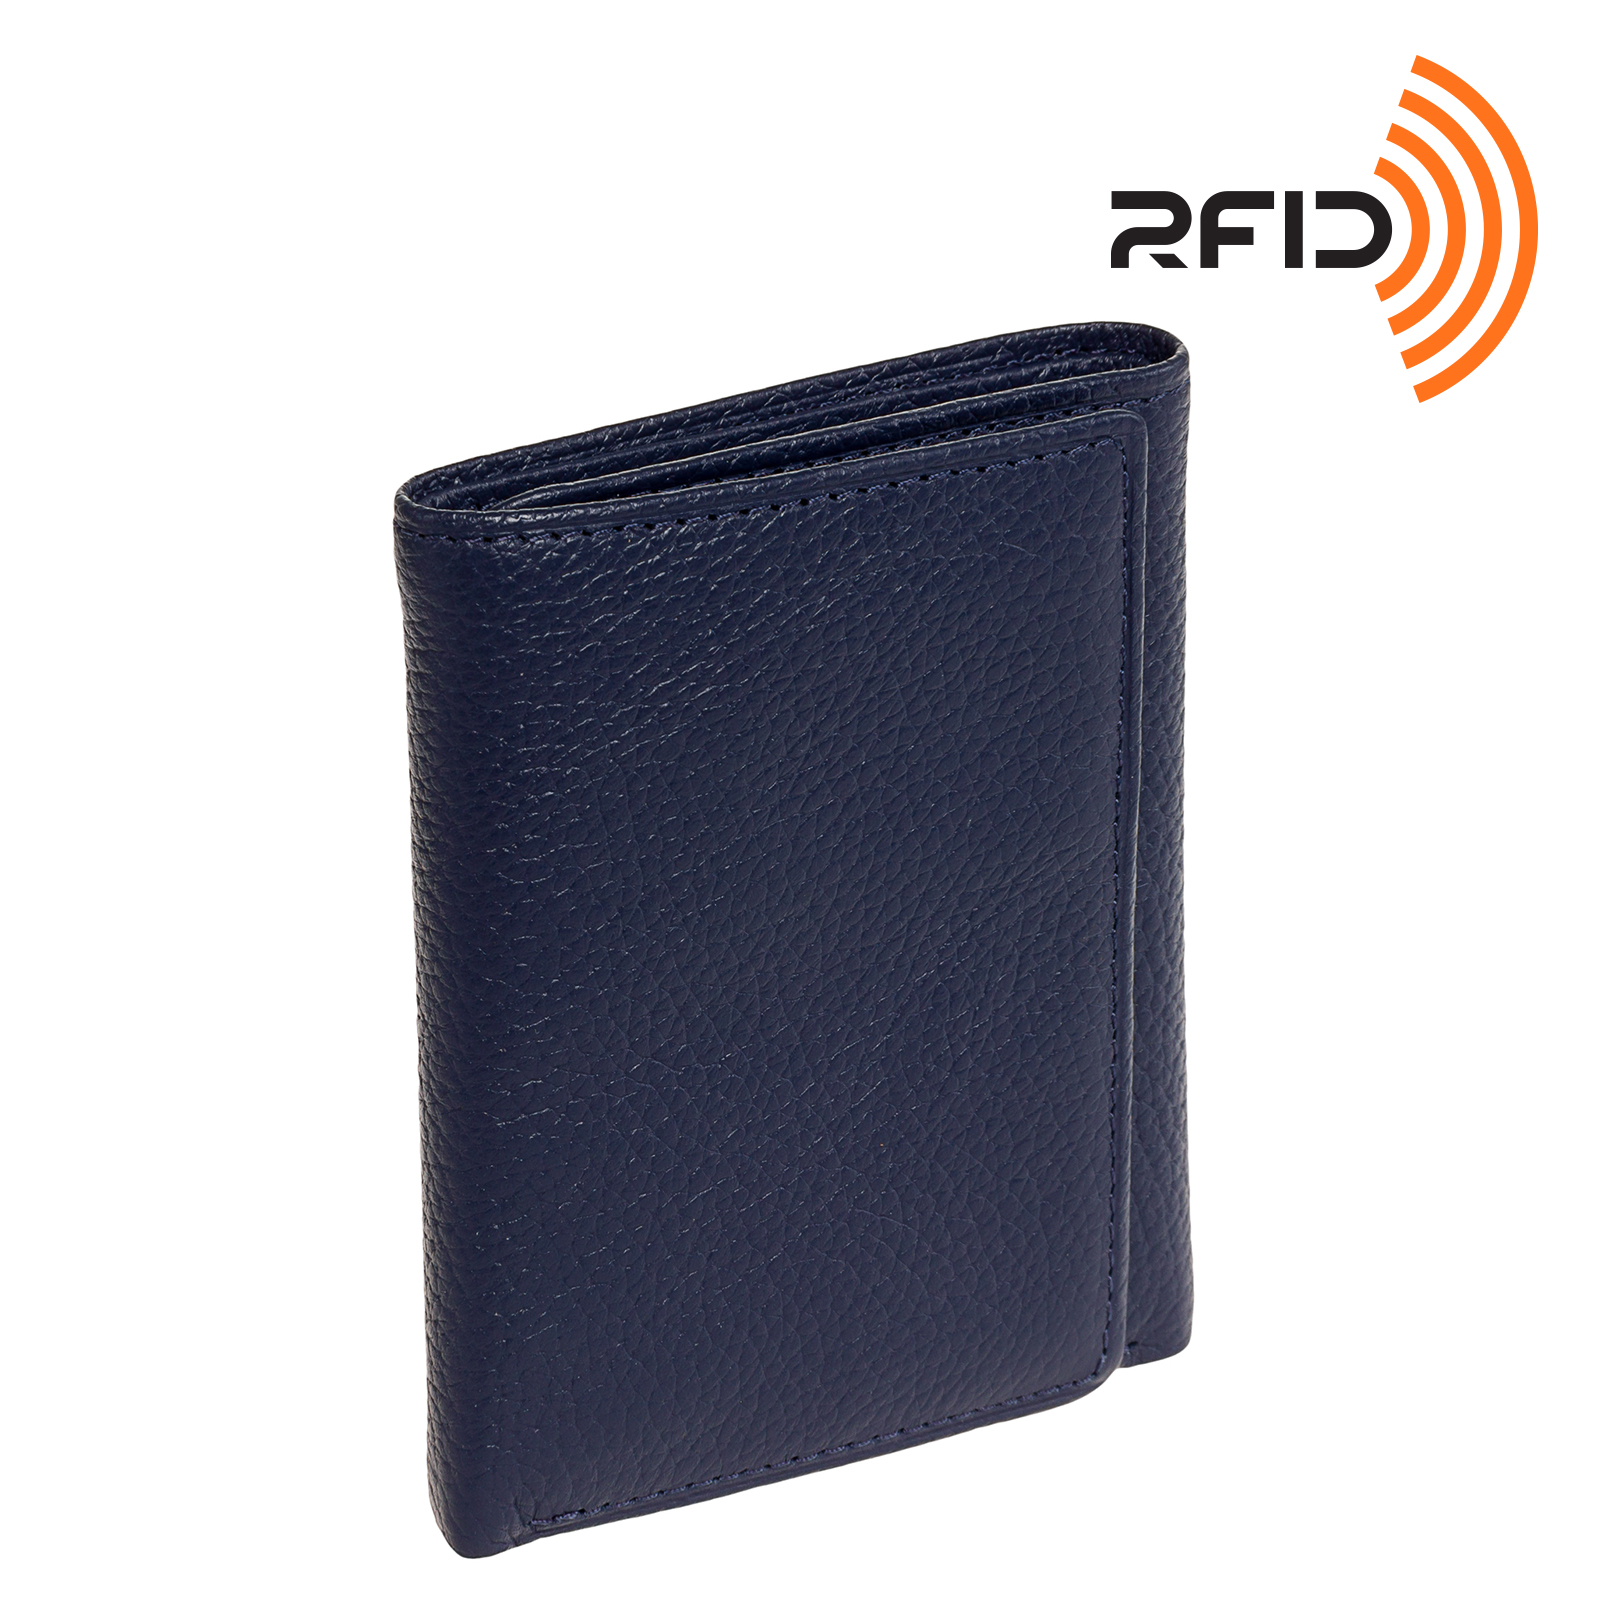 88744a3af677 Mens Trifold Wallet Inserts | Stanford Center for Opportunity Policy ...